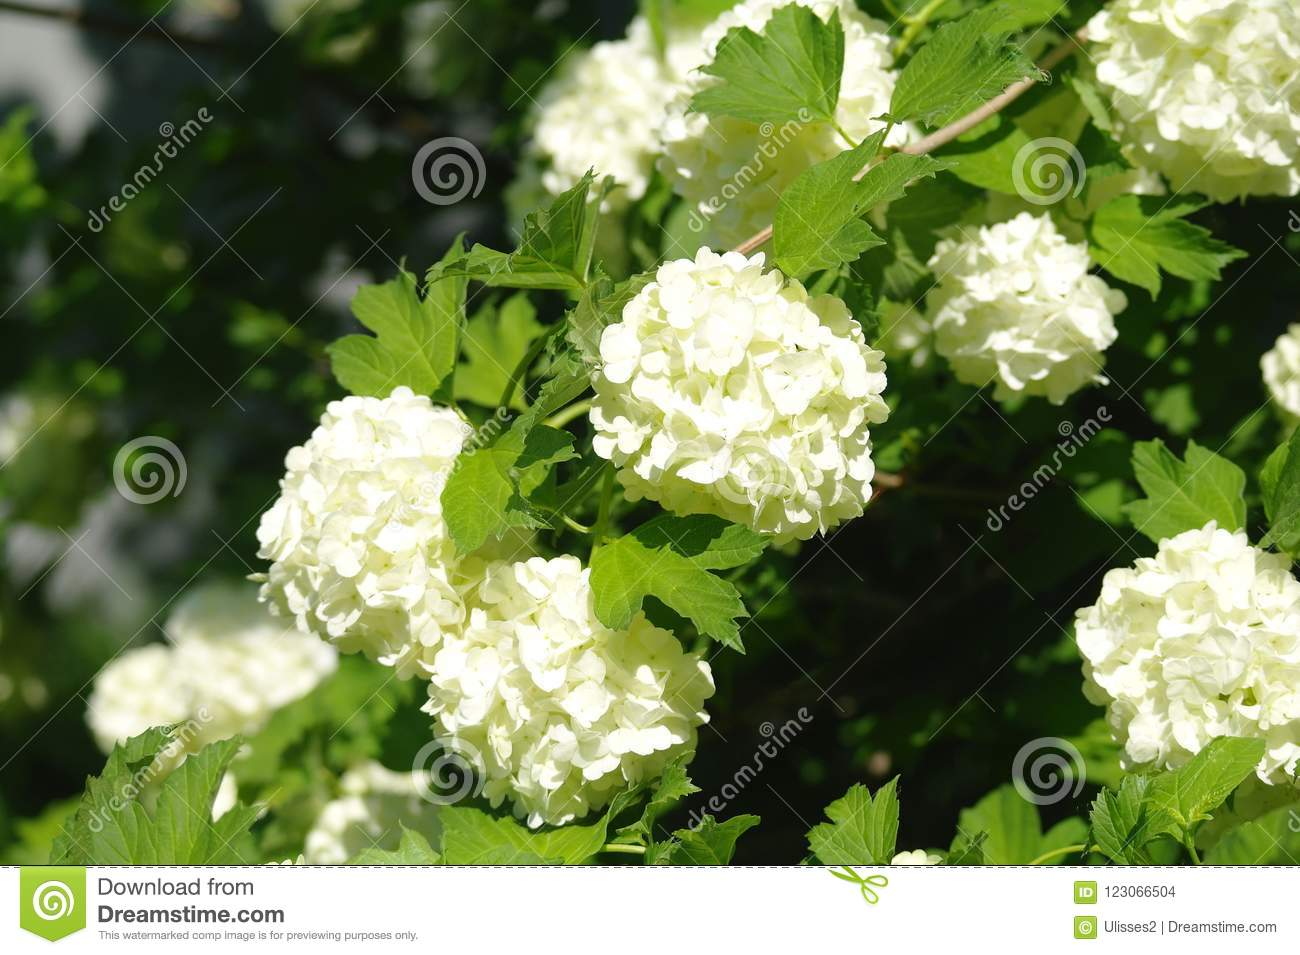 White Scented Flowers Against Background Stock Photo Image Of Balm